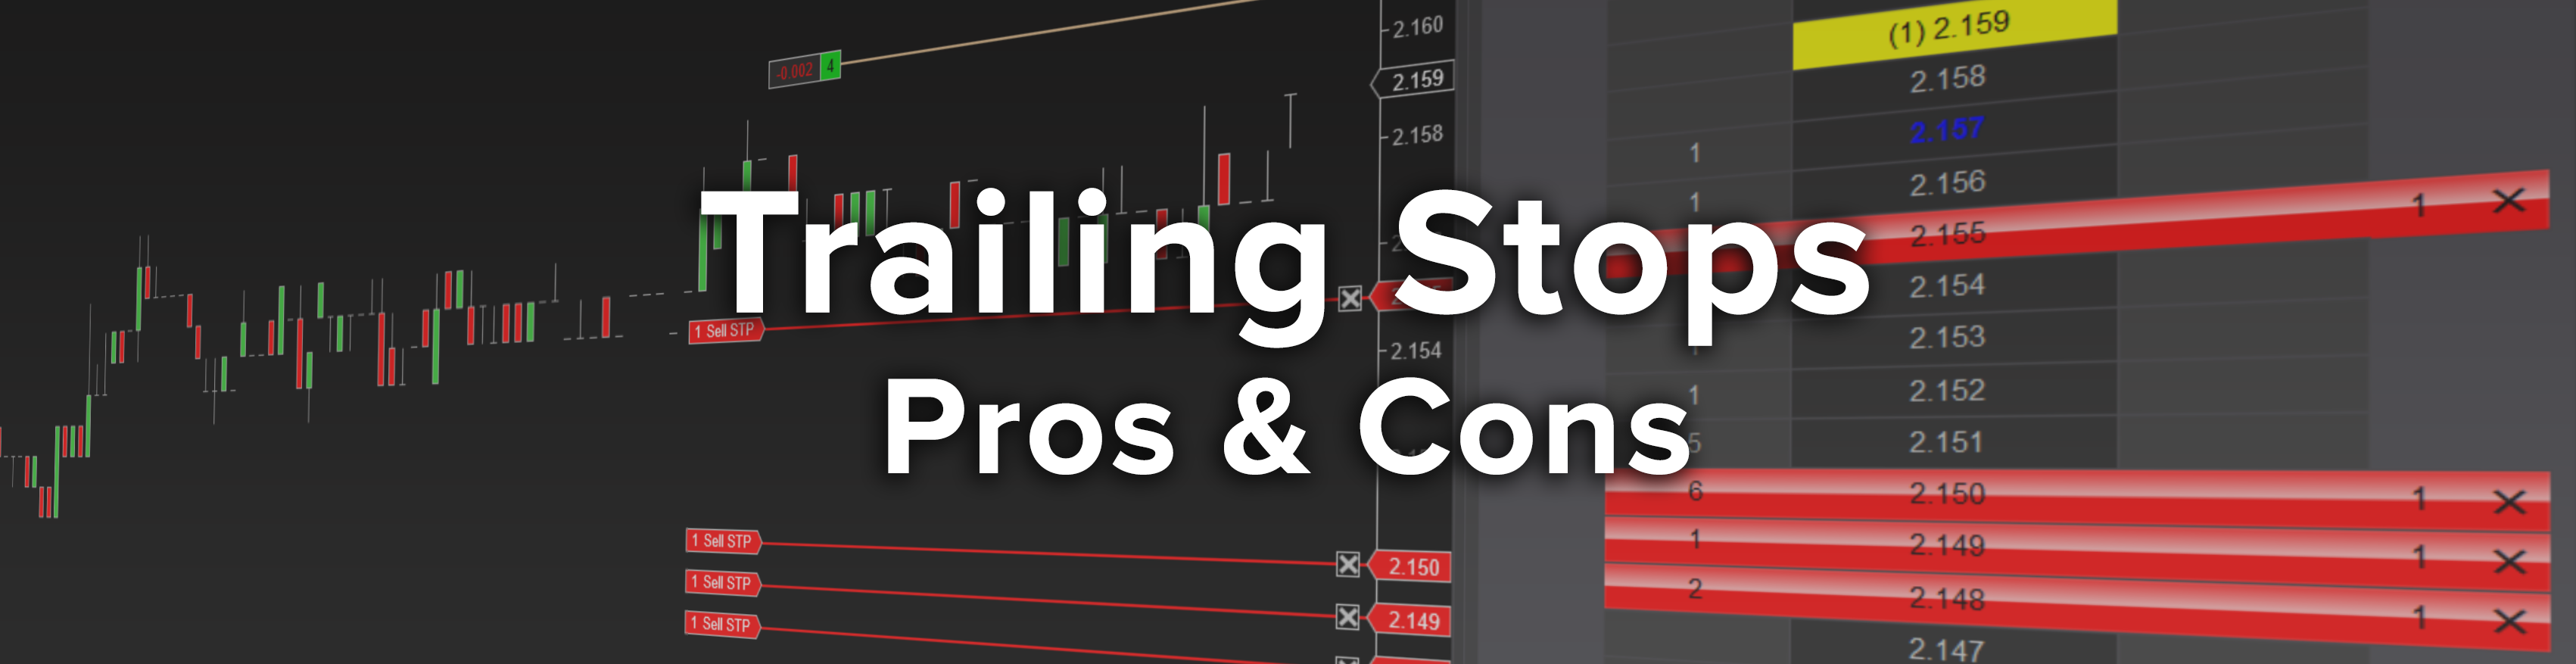 trailing stops stop loss pros cons protective